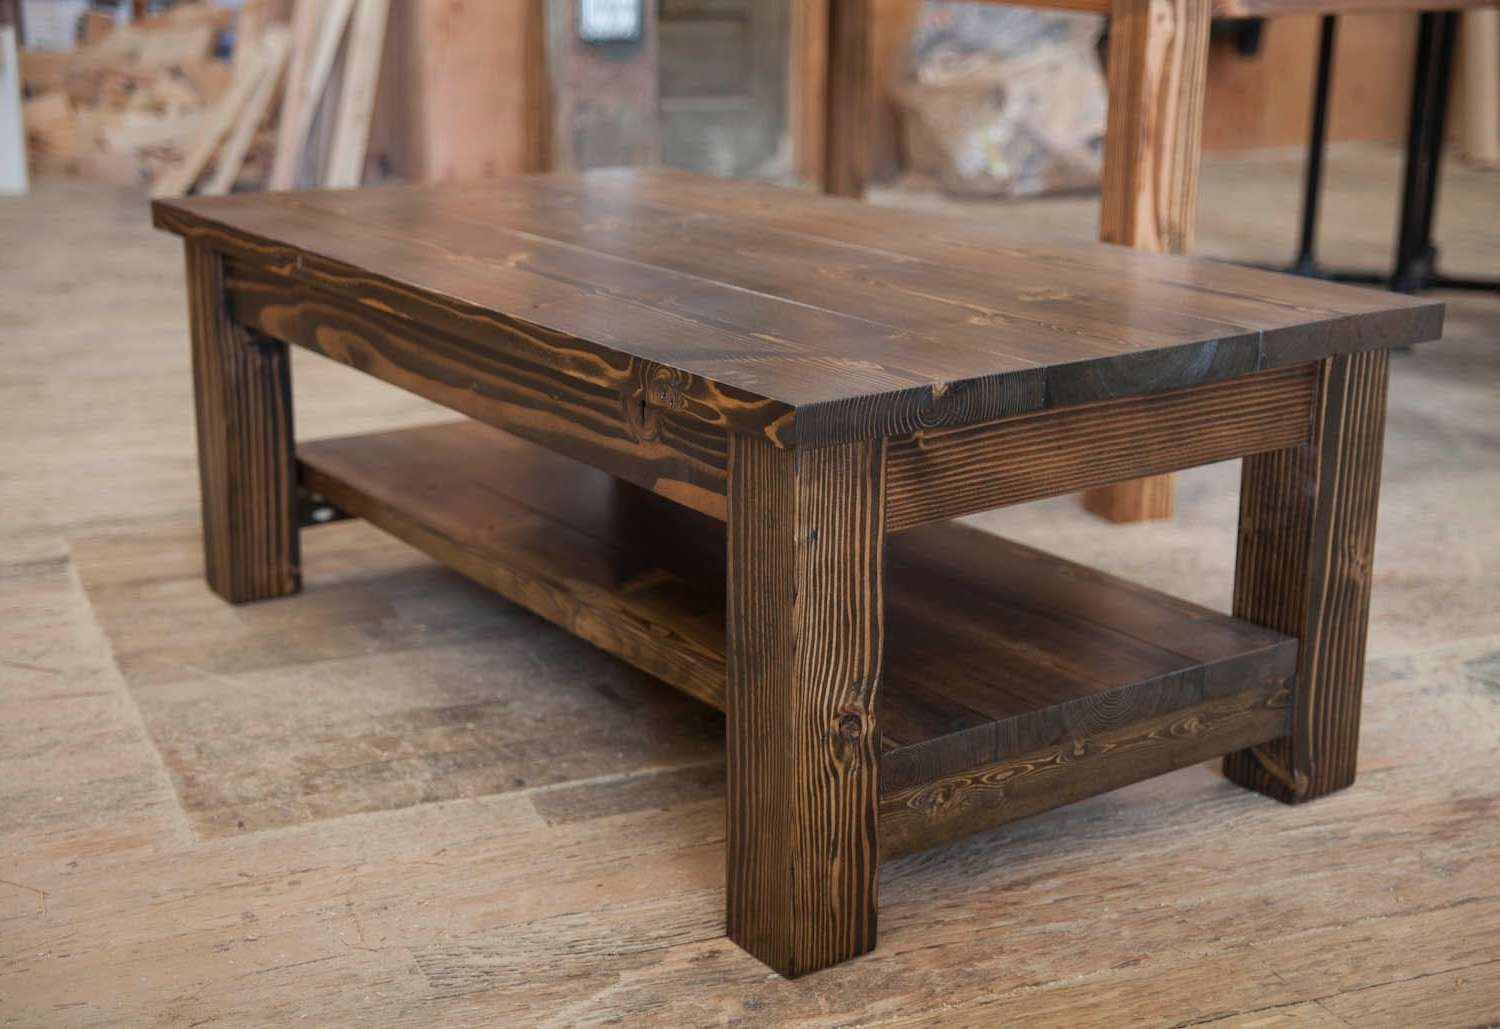 Farmhouse Coffee Table Rustic Coffee Table Solid Wood Pertaining To Popular Farmhouse Coffee Tables (View 7 of 20)